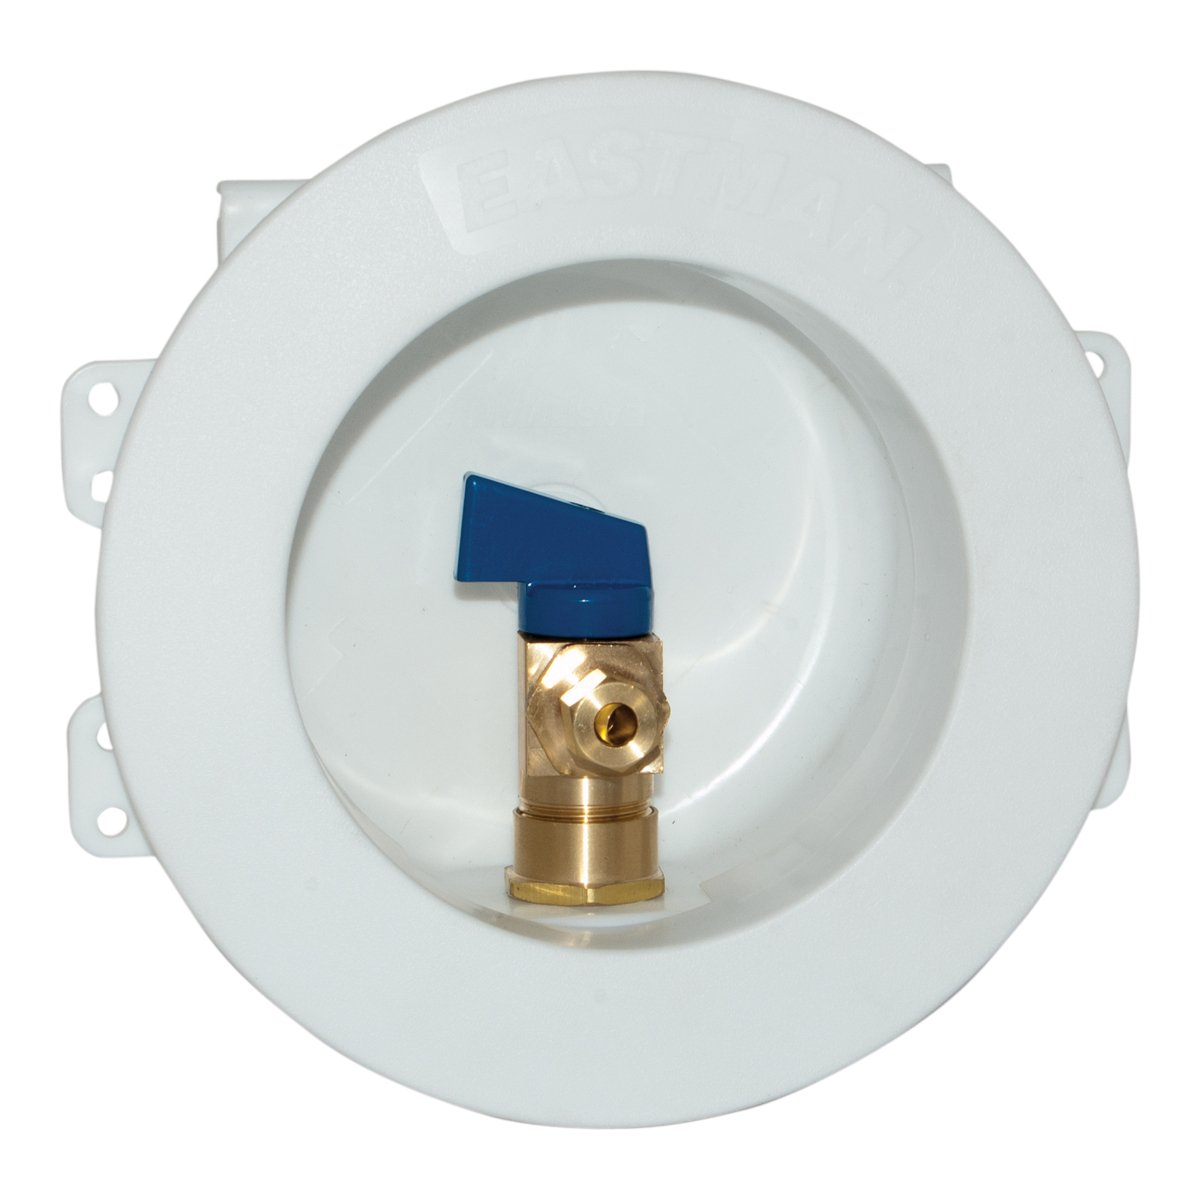 Eastman 60239 CPVC Round Mini Ice Maker Outlet Box, 1/2-inch CPVC Connection with Installed 1/4-Turn Ball Valve, White